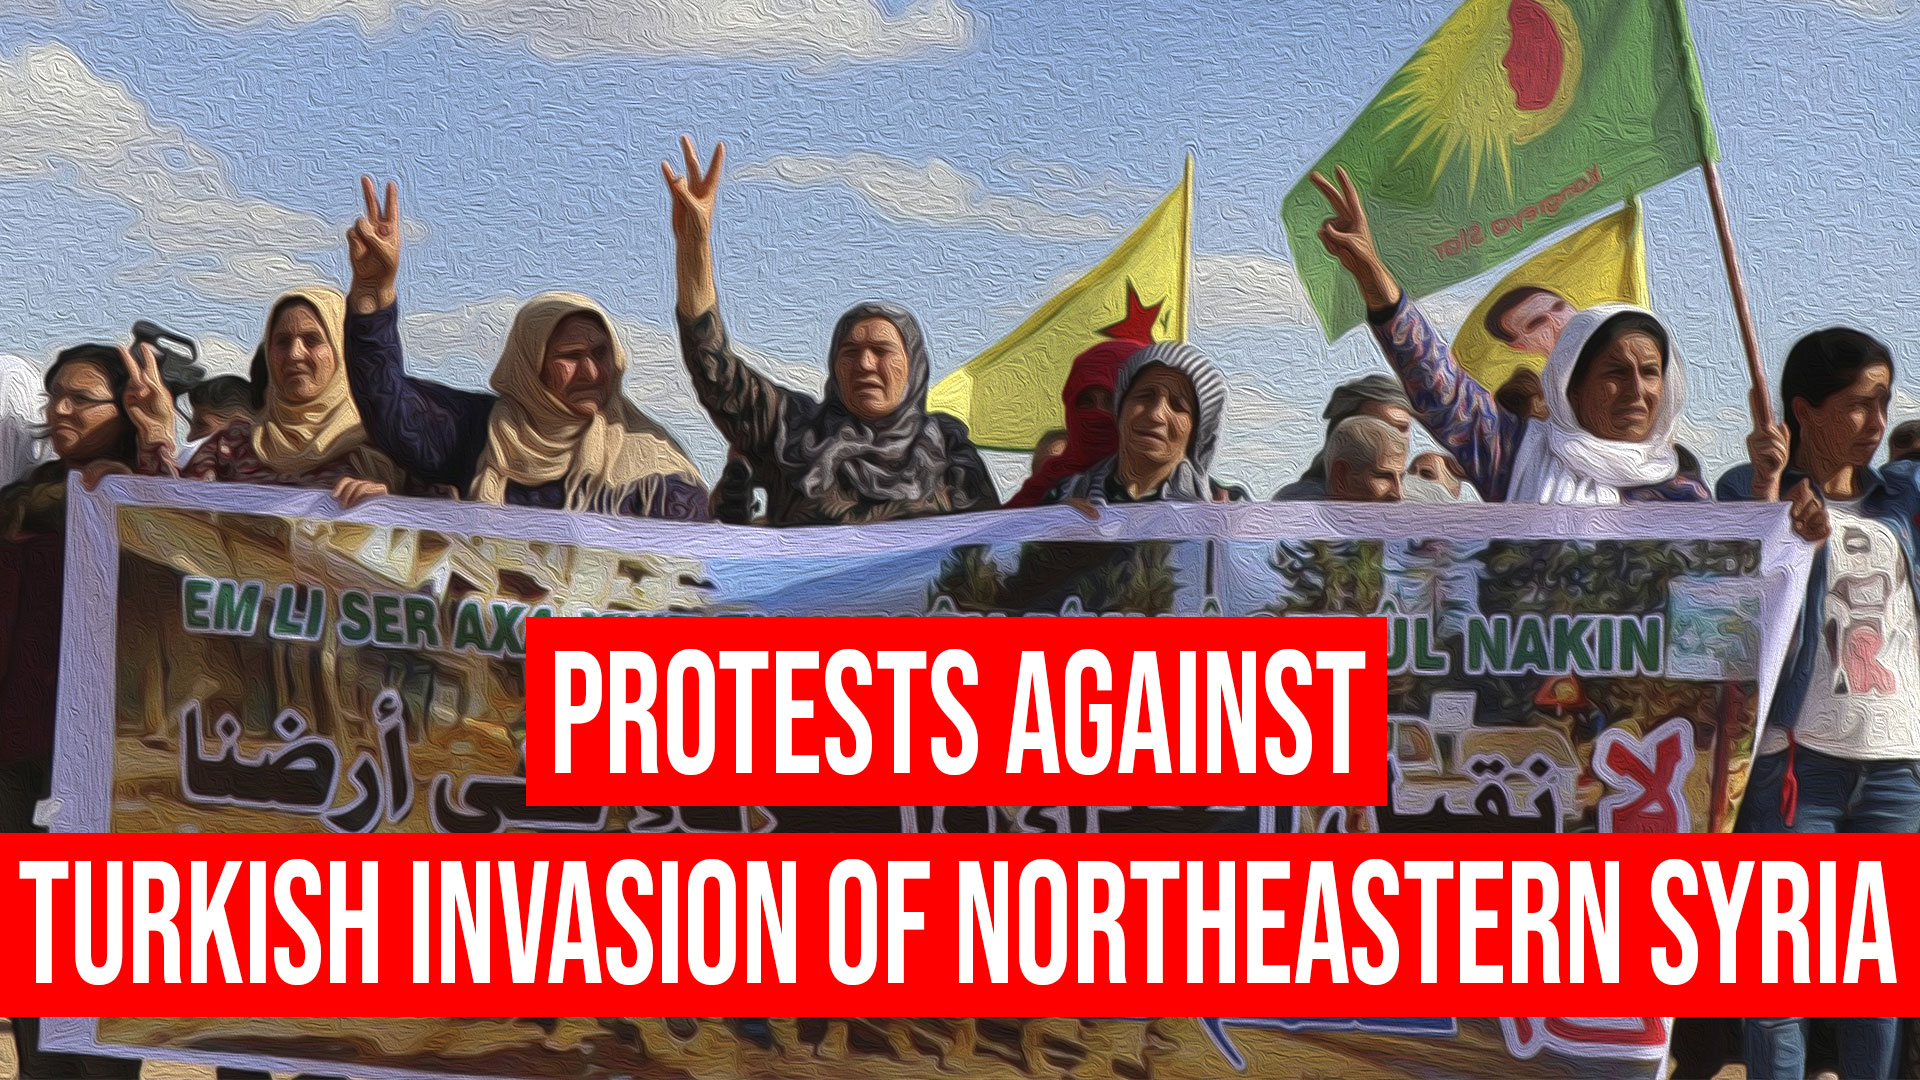 Protesters across the world condemn Erdoğan's invasion of northeastern Syria_